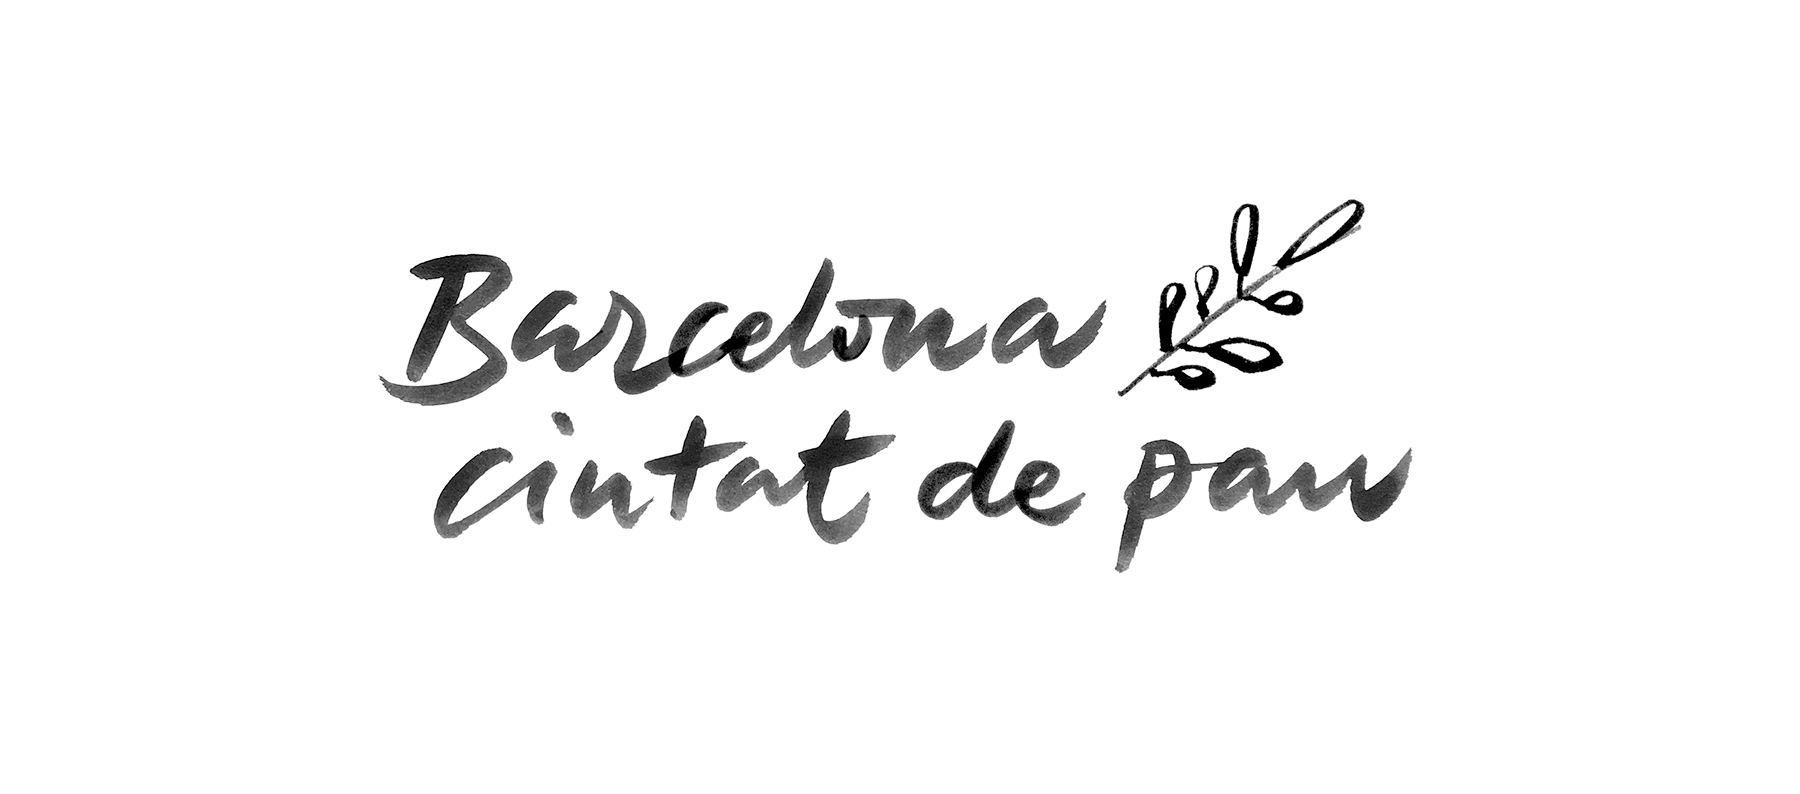 BarcelonaCiutatdePau_final